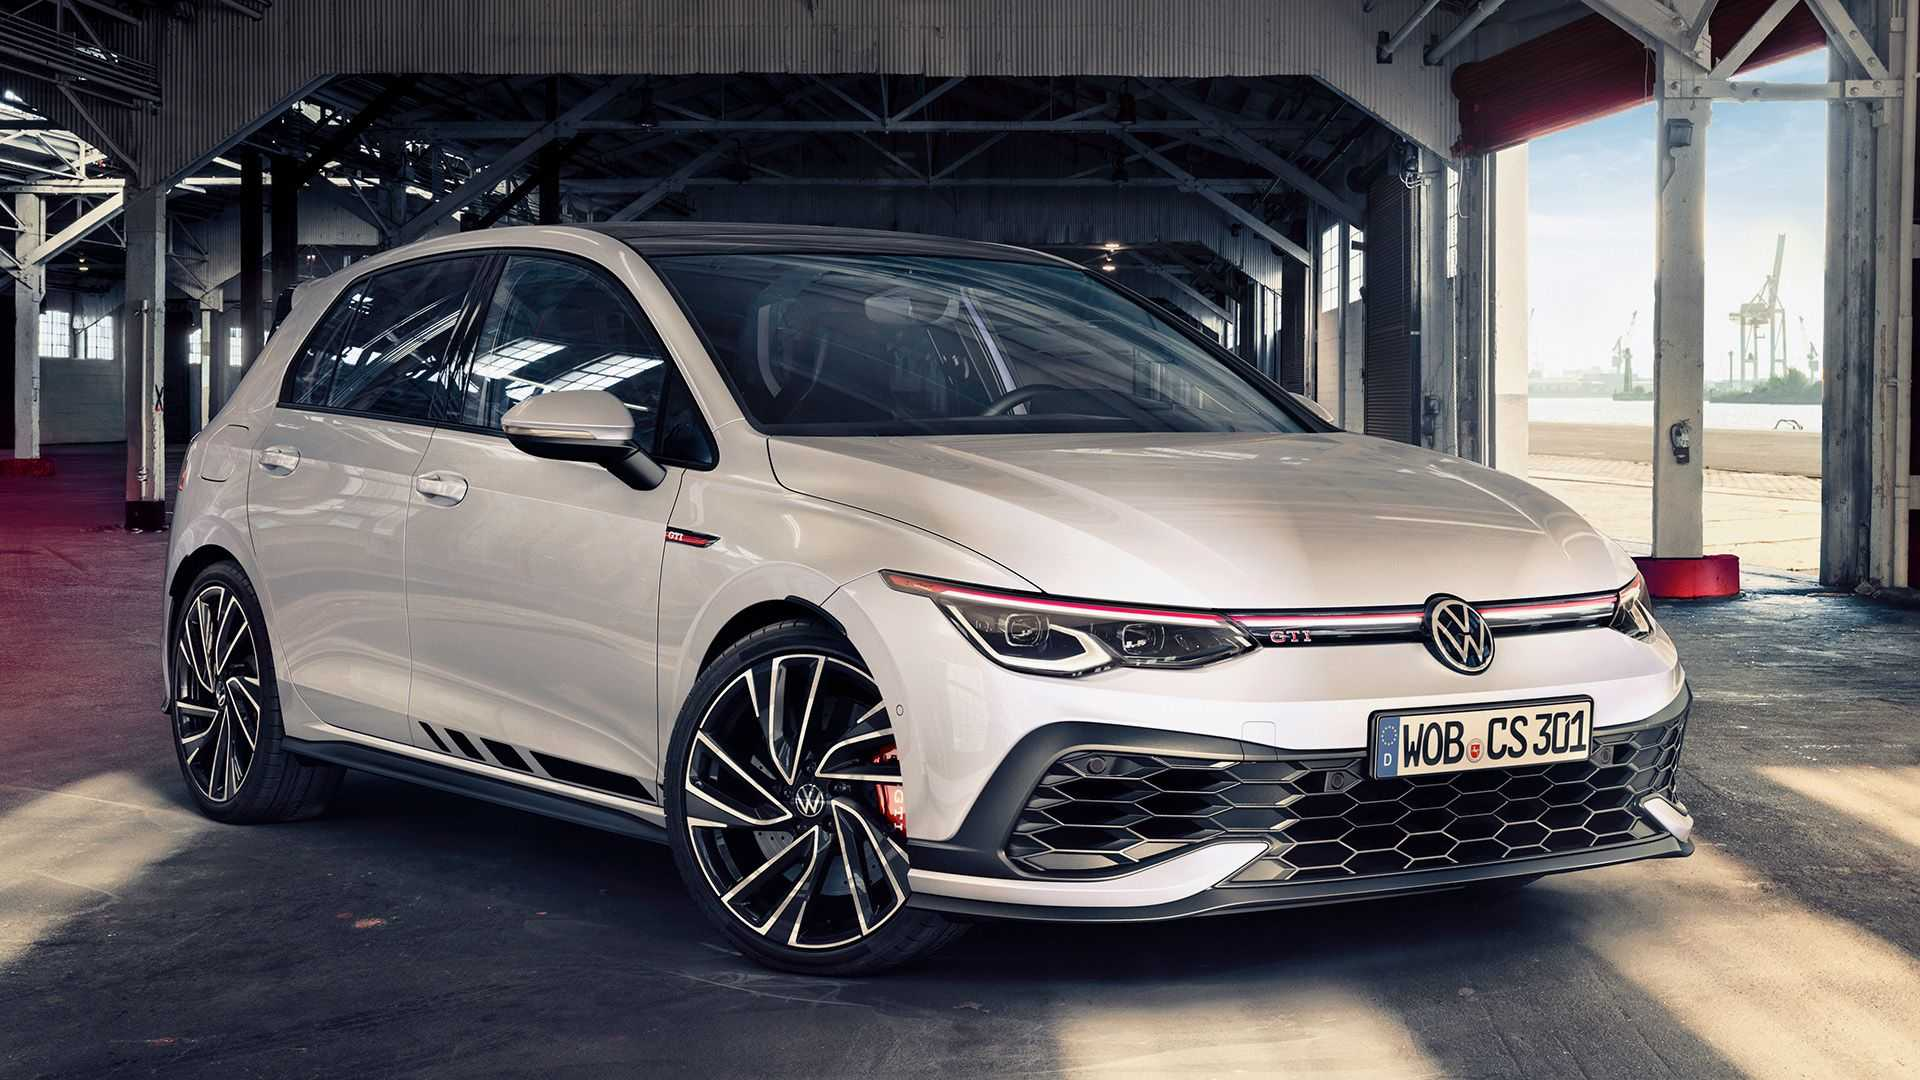 Vw Golf Gti Clubsport Revealed With Nearly 300 Hp Still Fwd